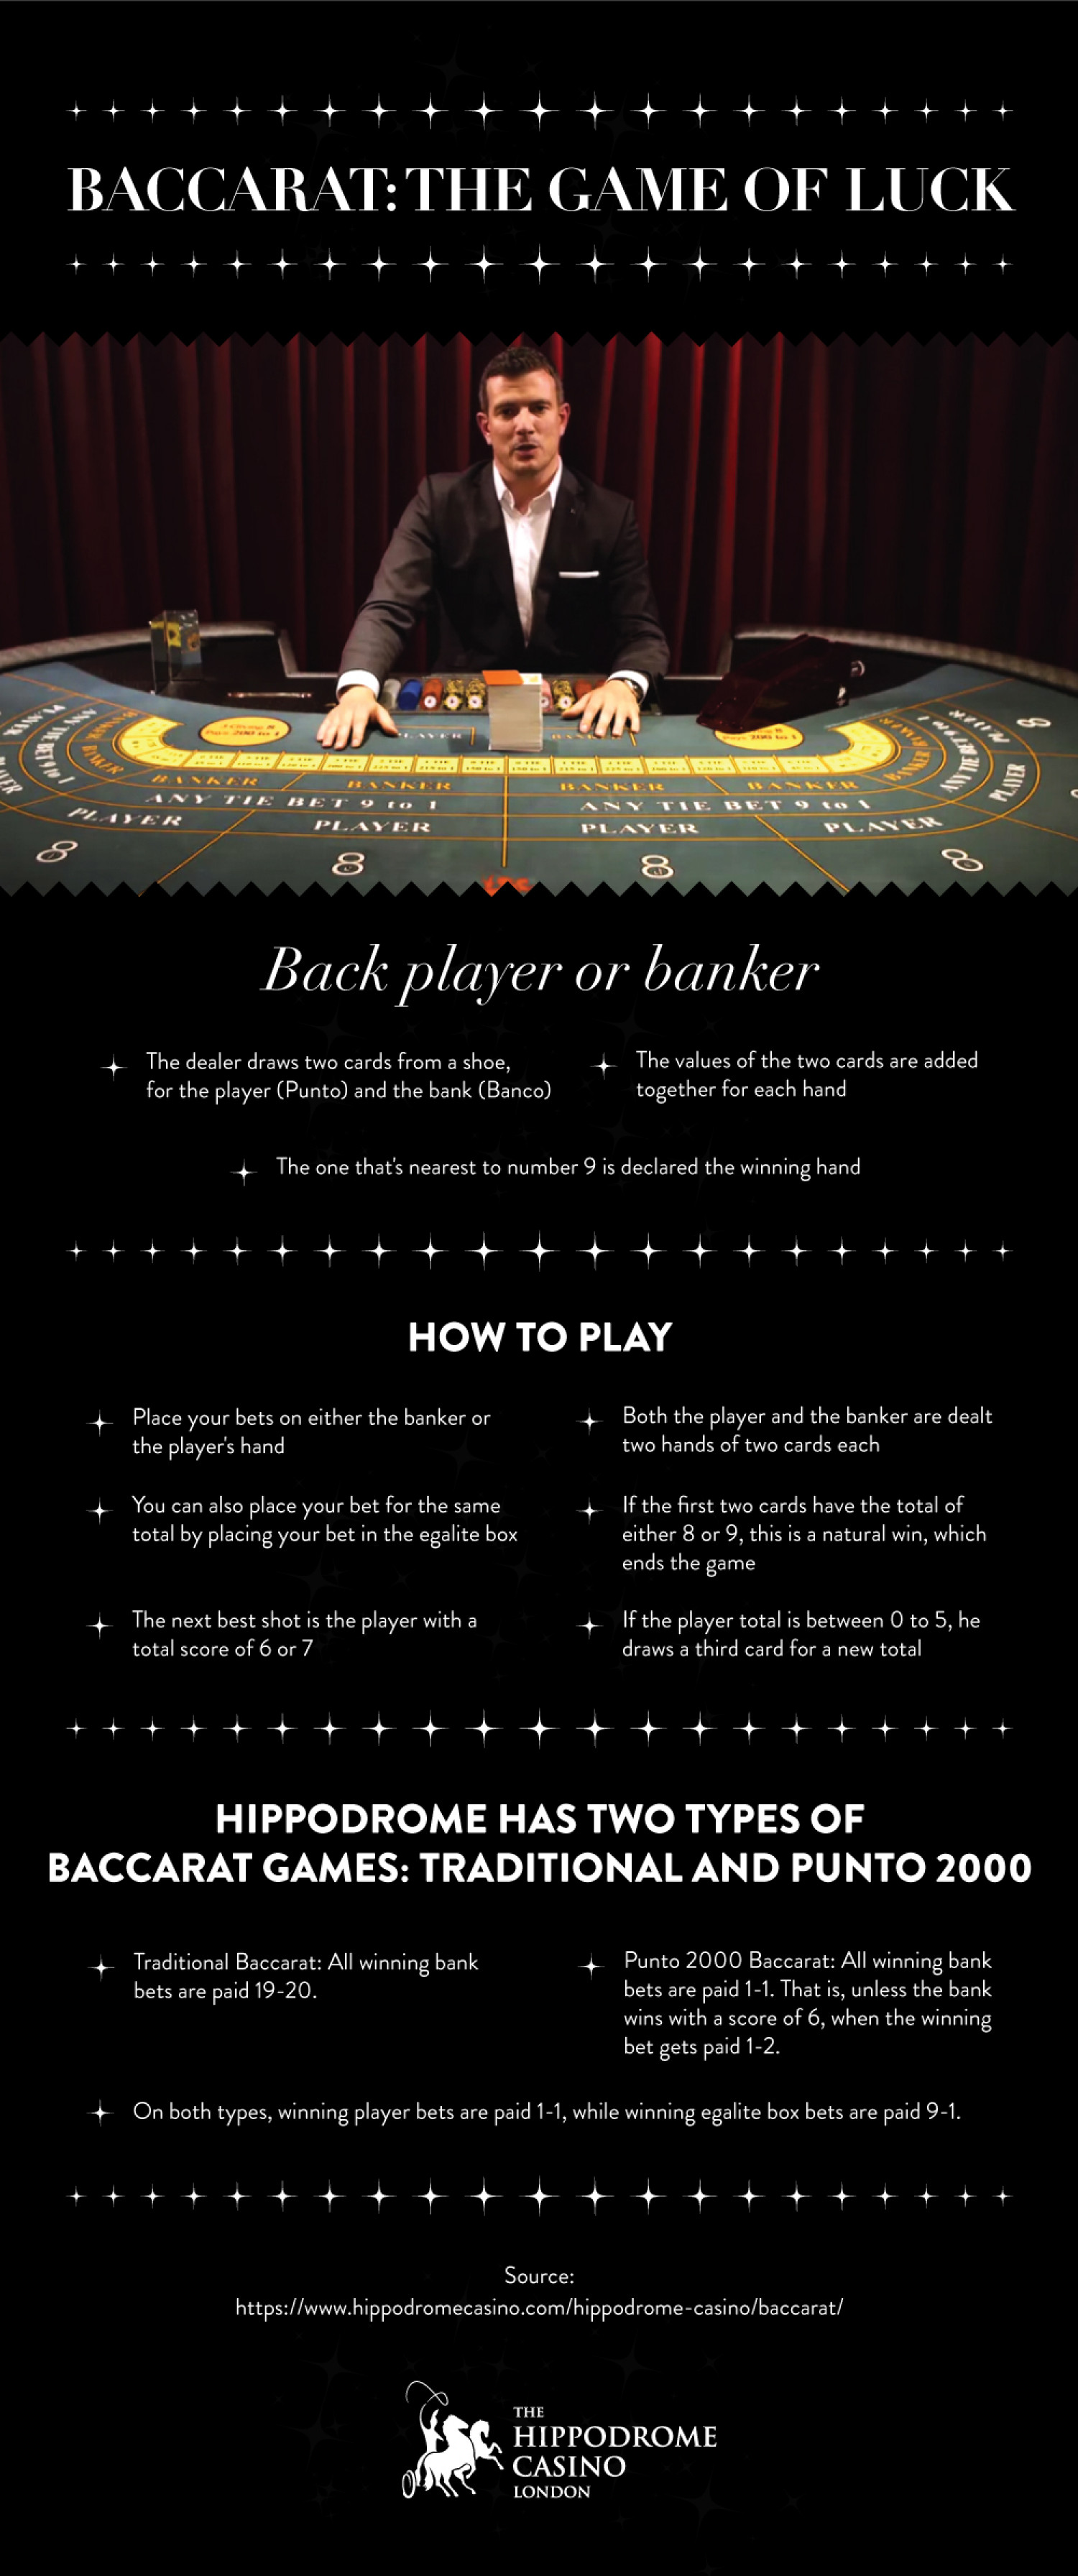 Baccarat The Game of Luck Infographic